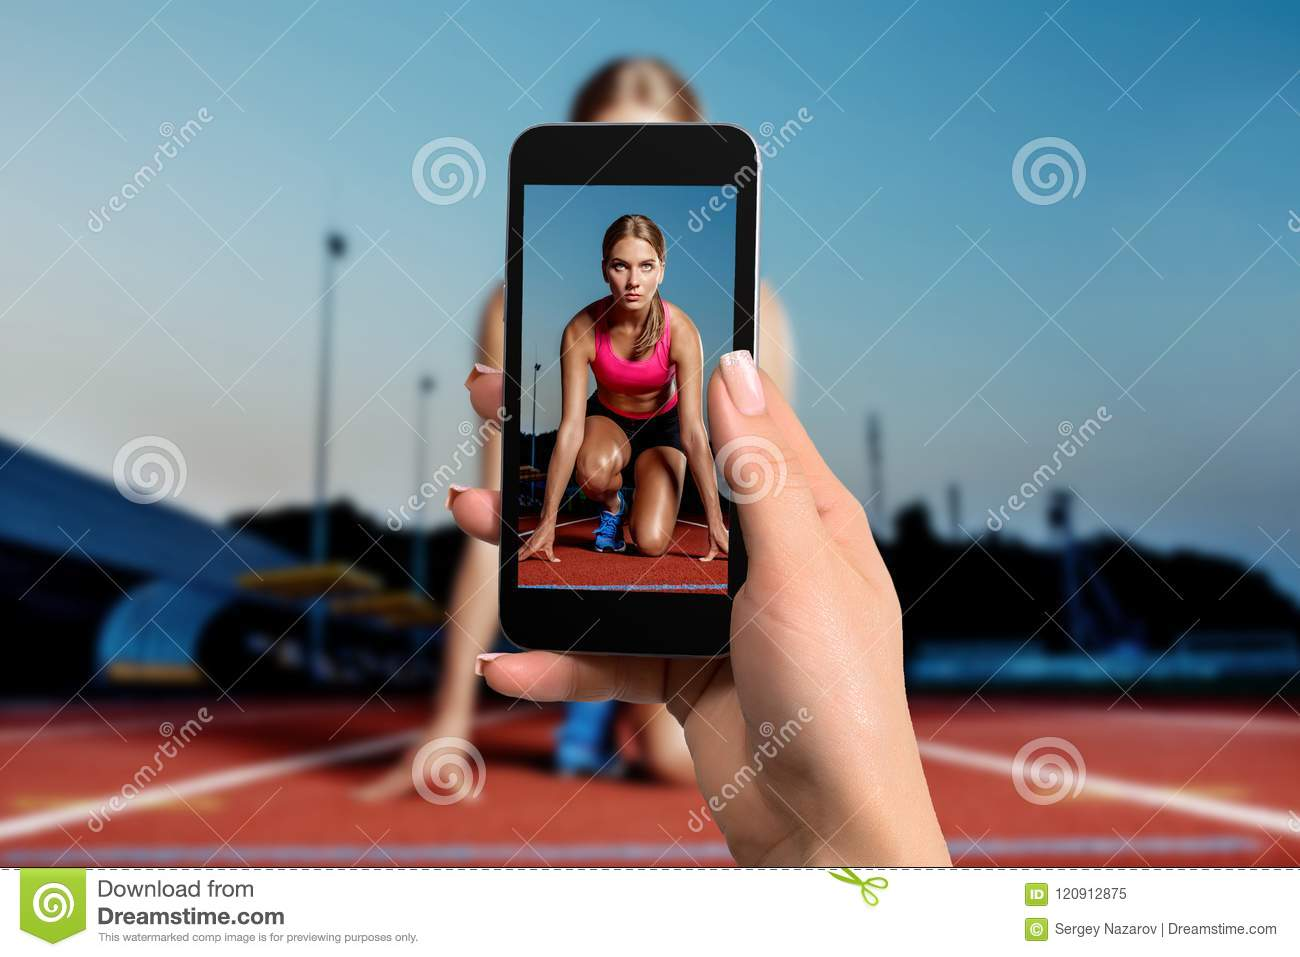 Closely image of female hands holding mobile phone with photo camera mode on the screen. Cropped image of running woman.